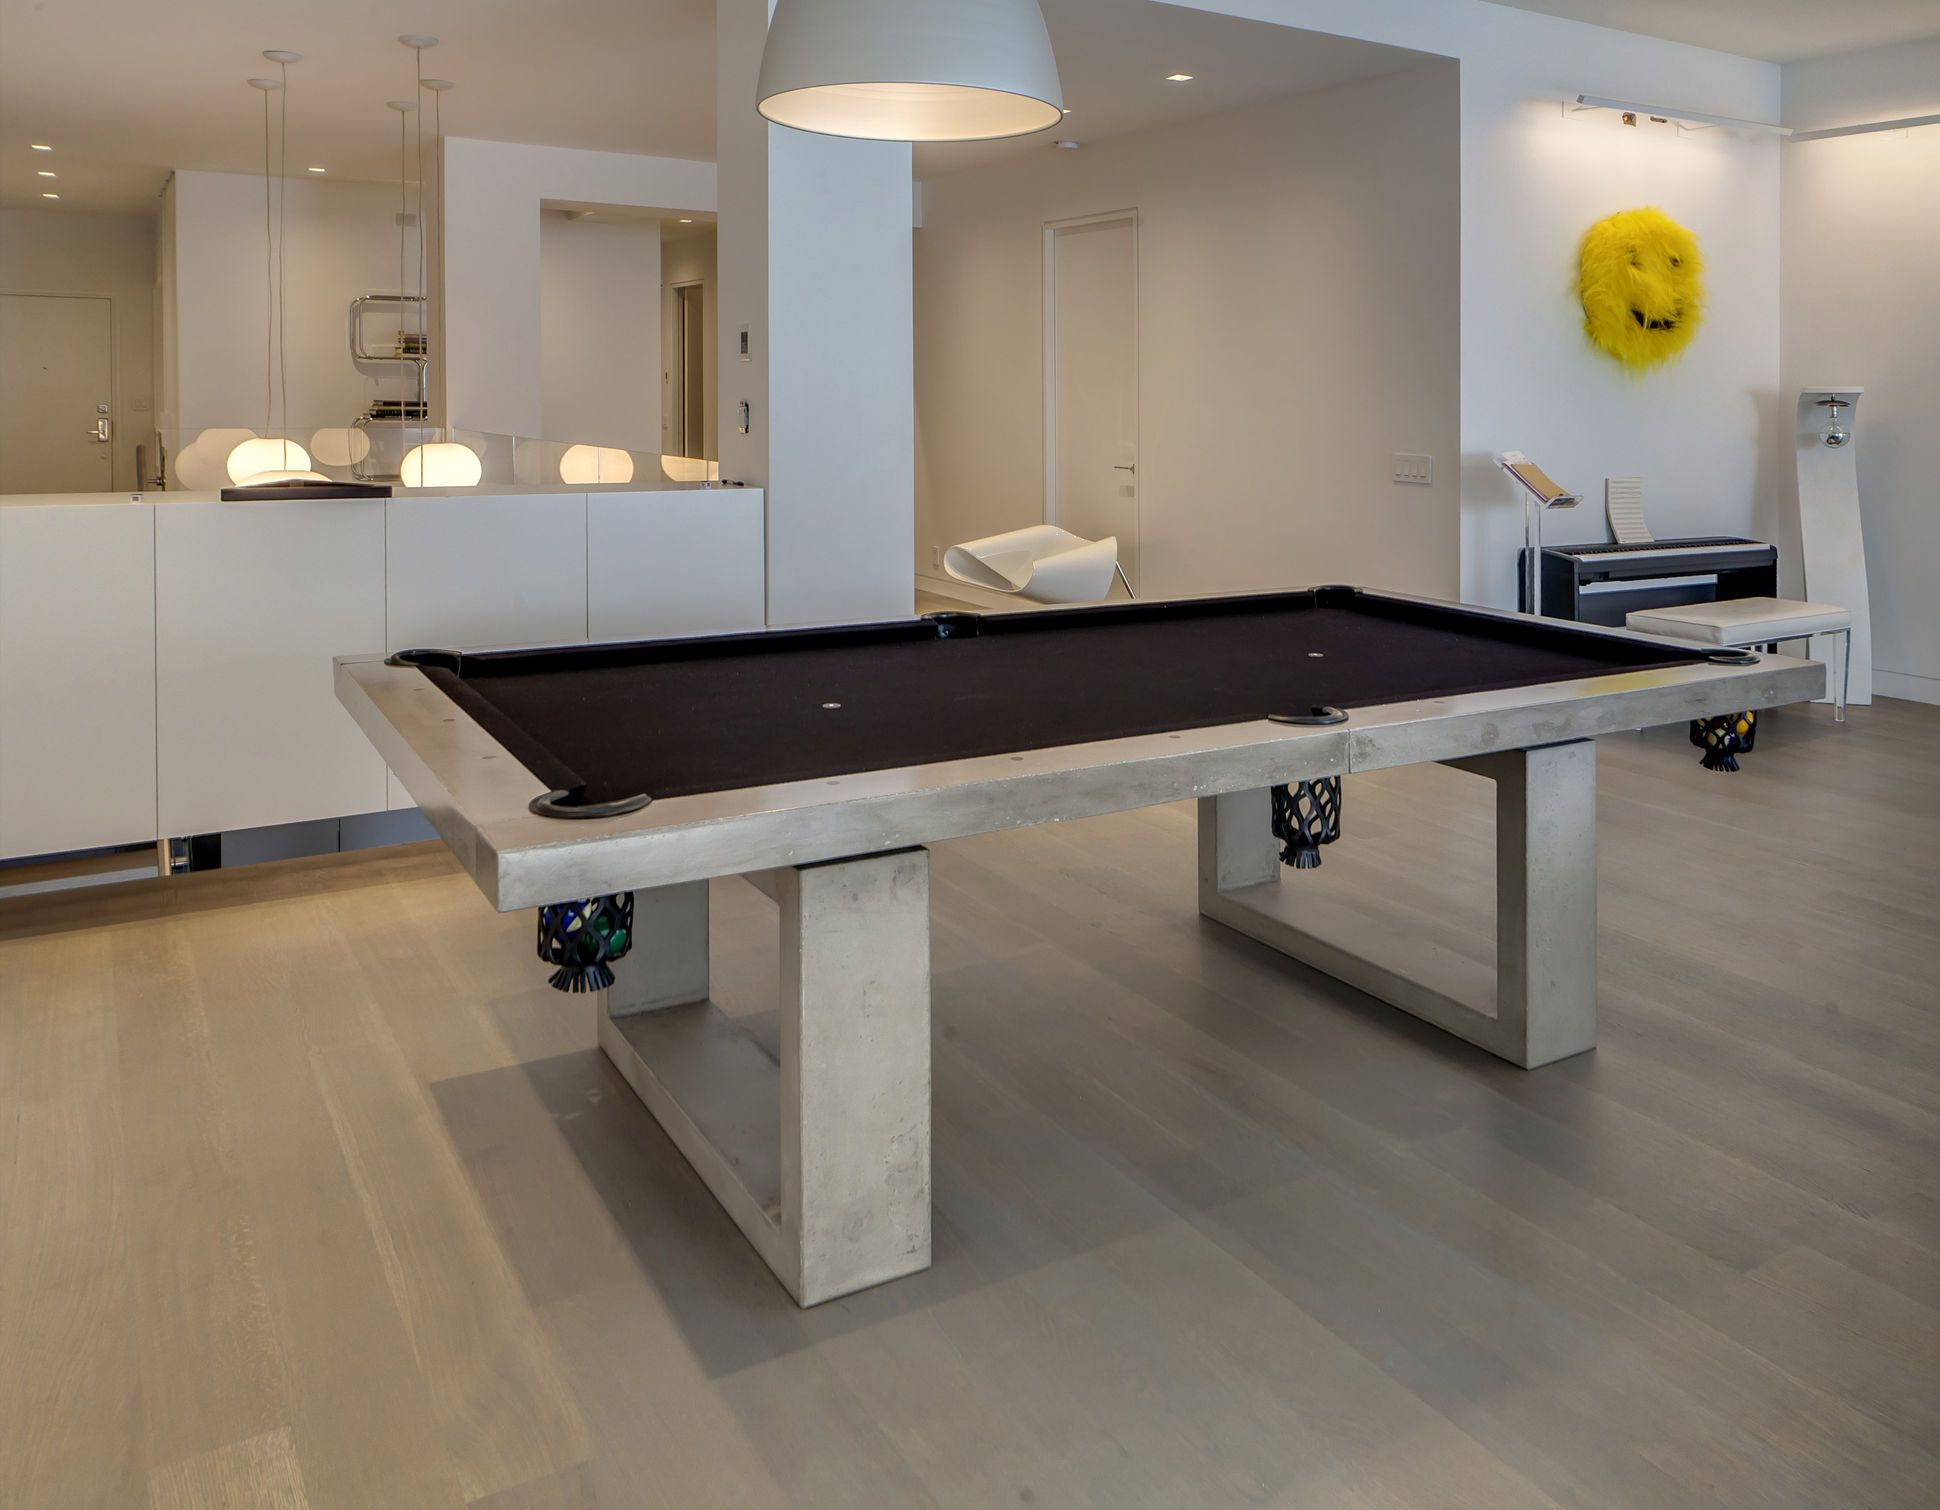 Dining Room Pool Table Combo Astonishing Design Of The Pool Dining Table With Brown Wooden Legs